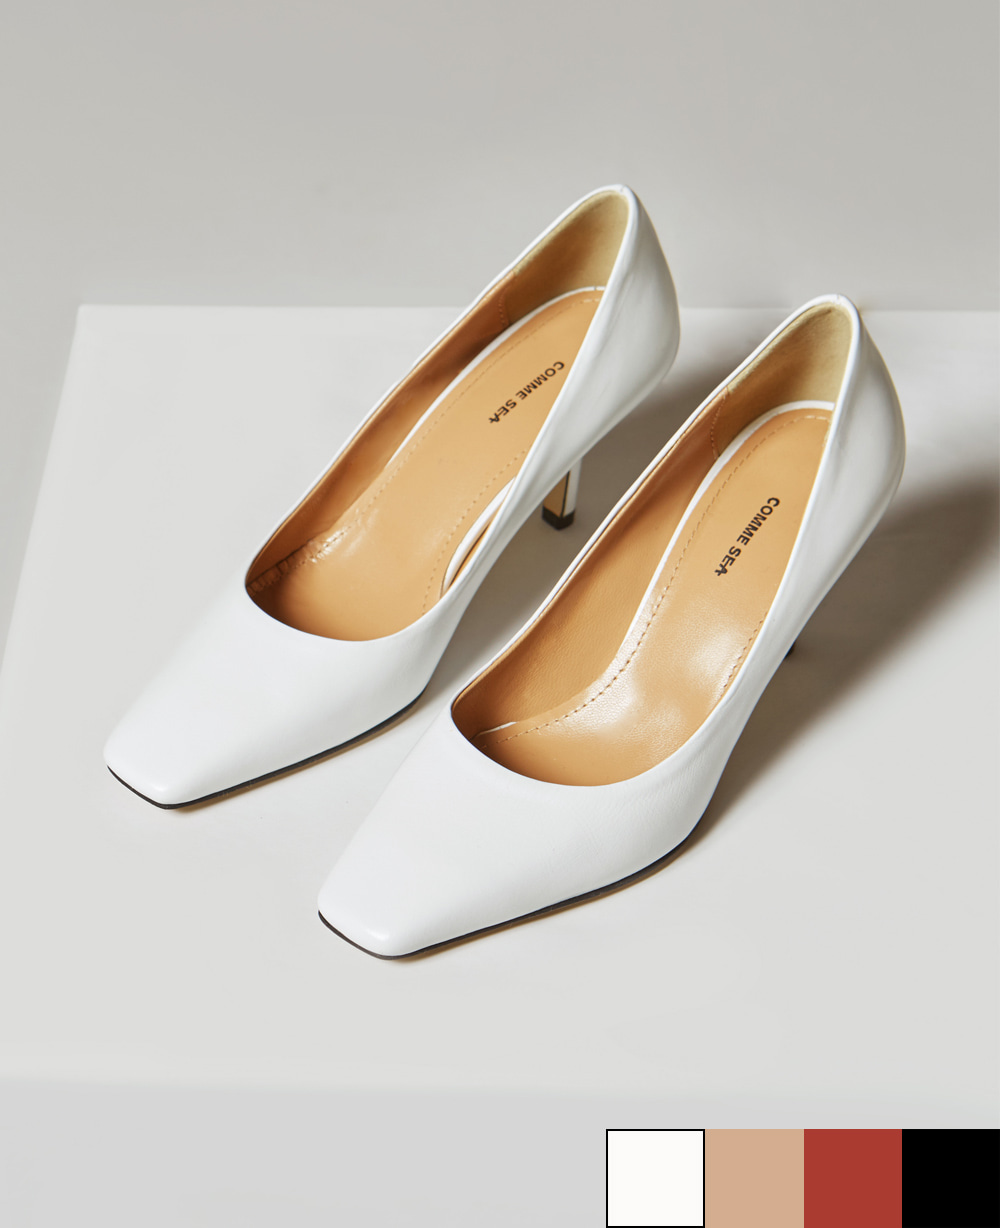 Classic Square Toe Pumps - WHITE / BLACK / BRICK RED / BEIGE